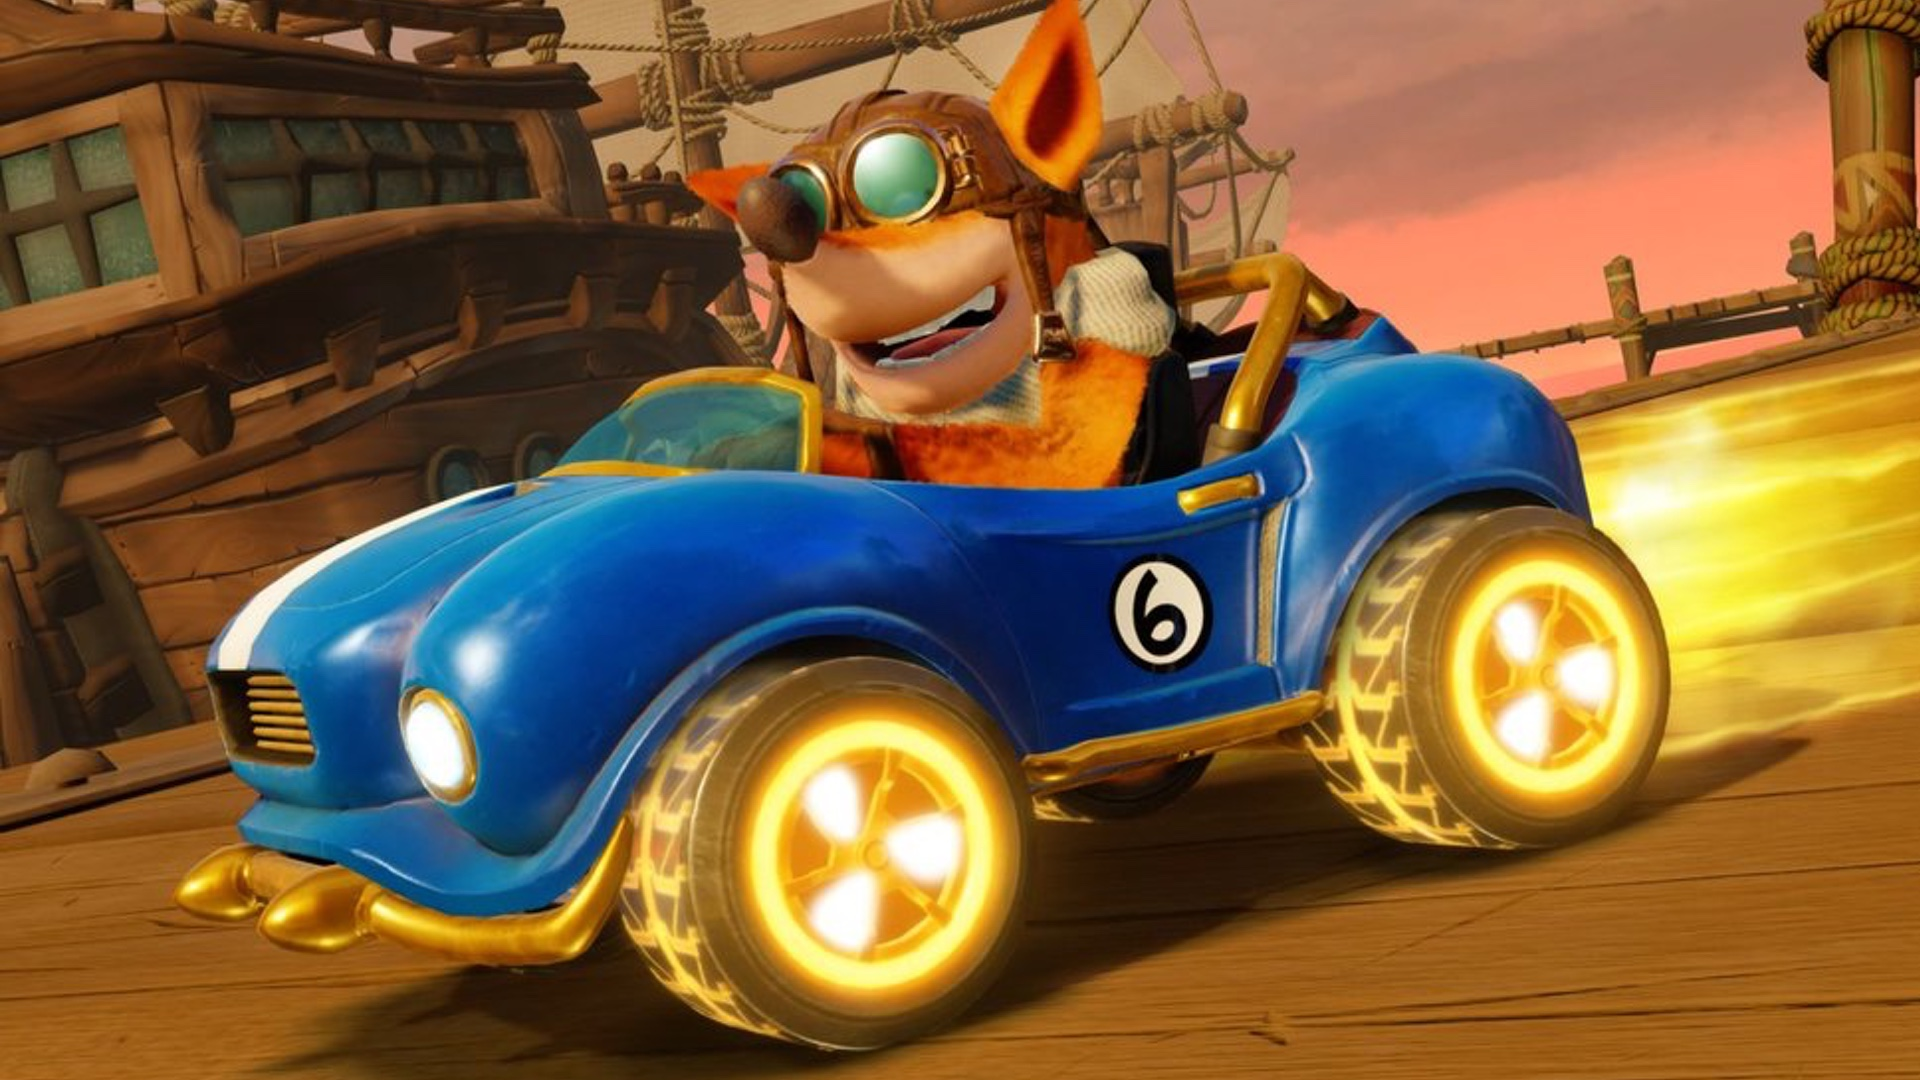 Kart and Character Customization is Coming to CRASH TEAM RACING